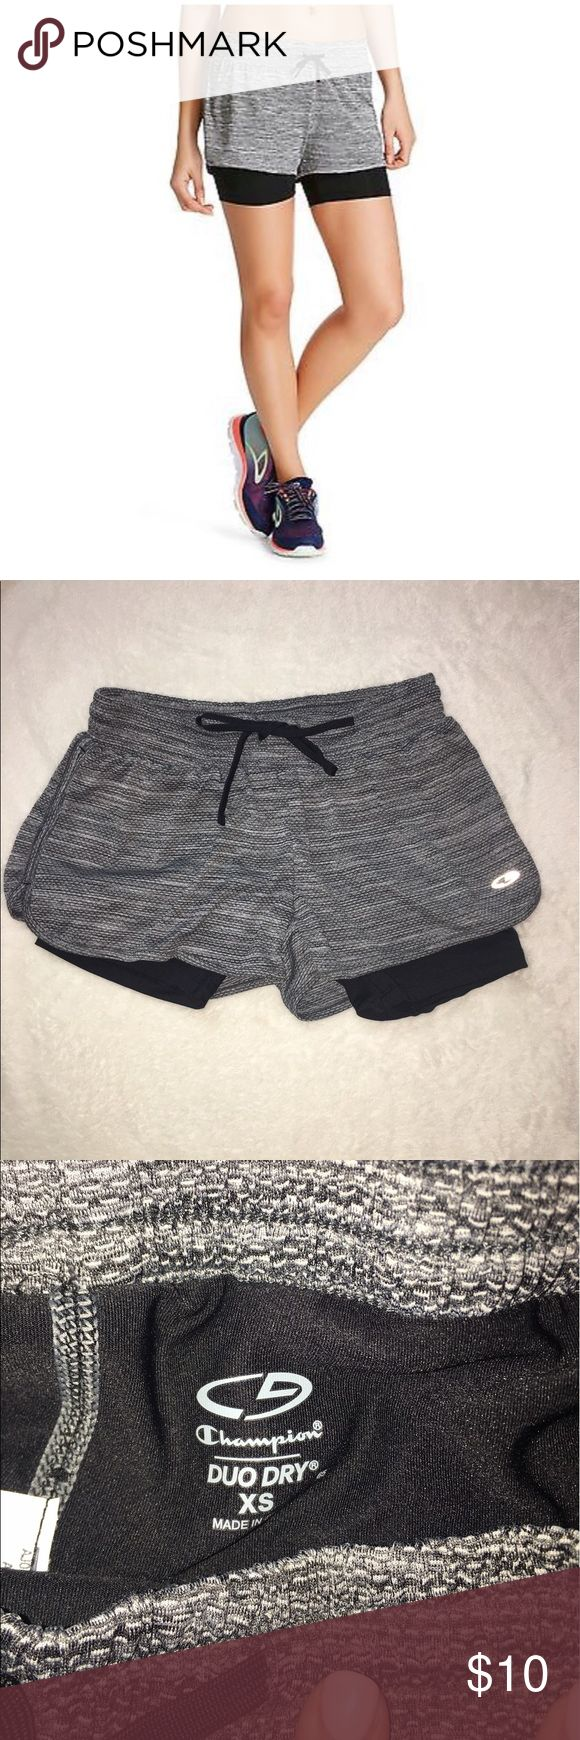 Layered Knit Gray Athletic Shorts New ✨ Duo-Dry C9 Champion Women's Layered Athletic Shorts. Provides active coverage with a supportive inner short that wicks to keep you dry and stays in place with a draw cord waist. New without tags, never been worn! **Brand Listed For Exposure** Under Armour Shorts